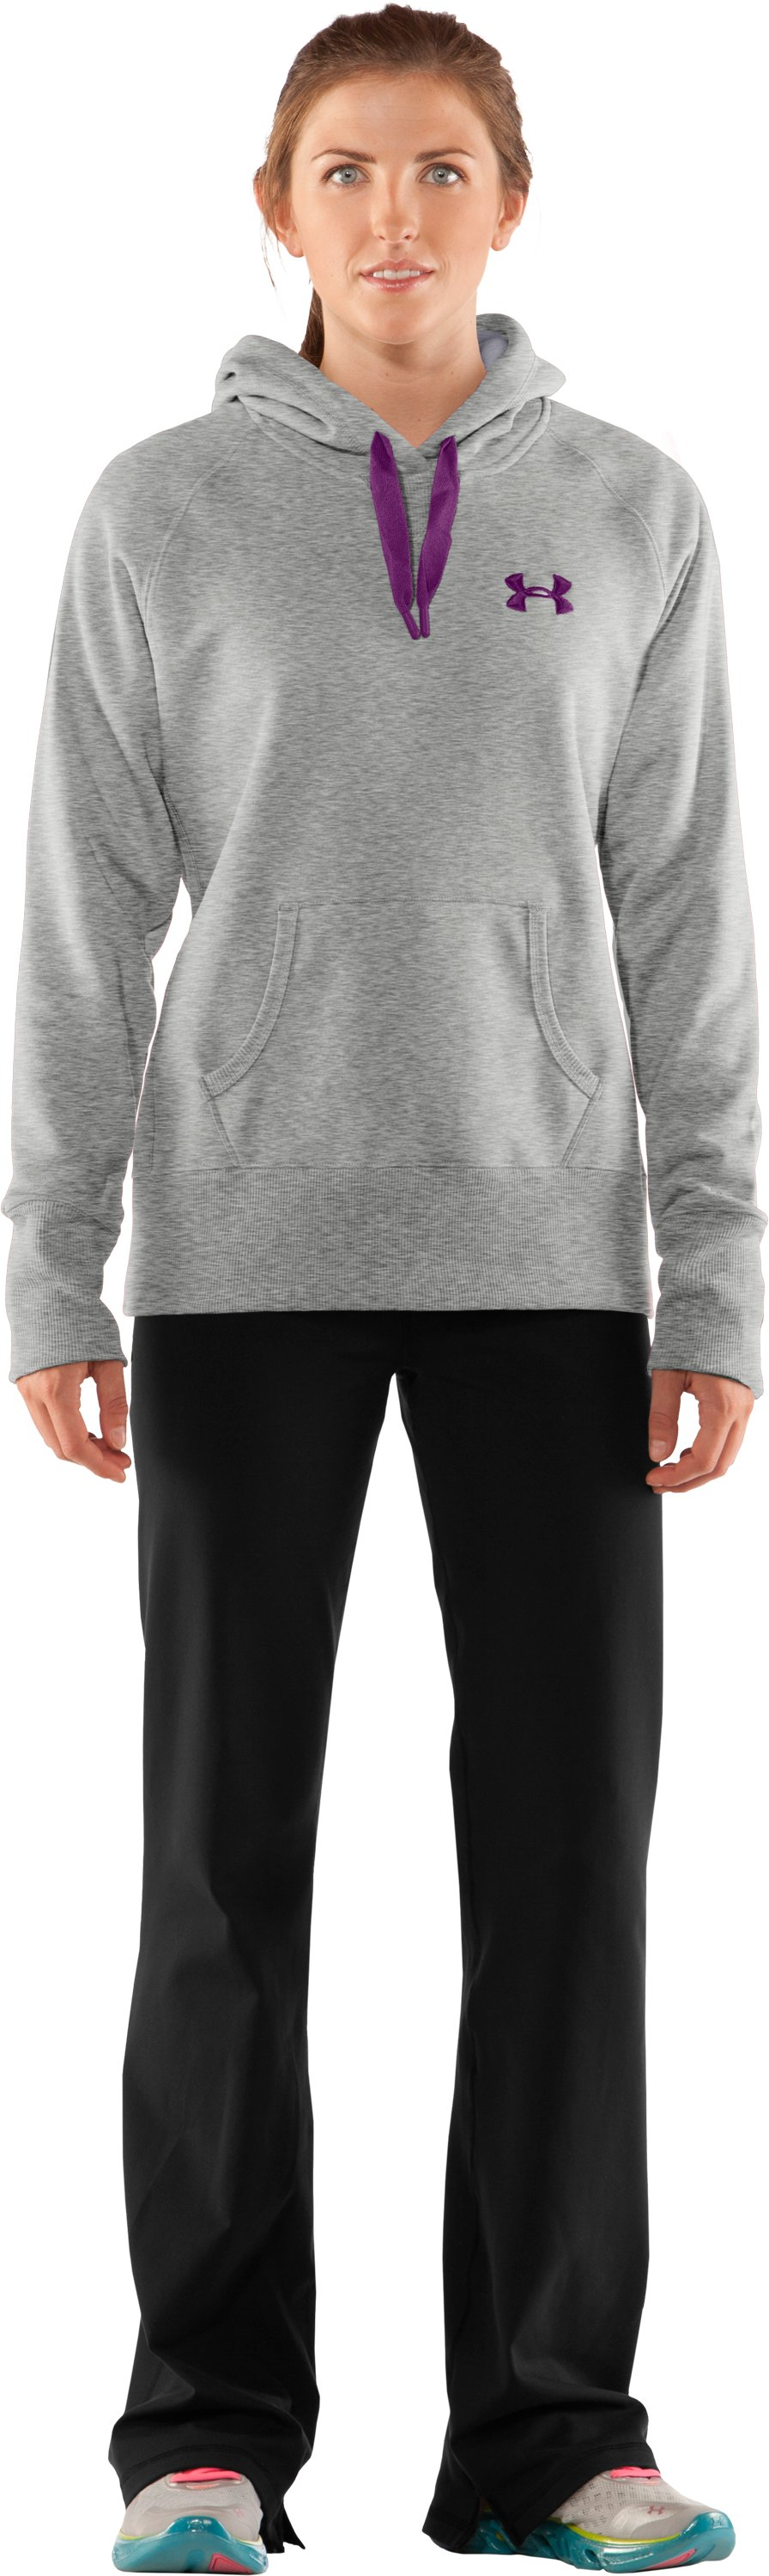 Women's Charged Cotton® Storm Hoodie, Silver Heather